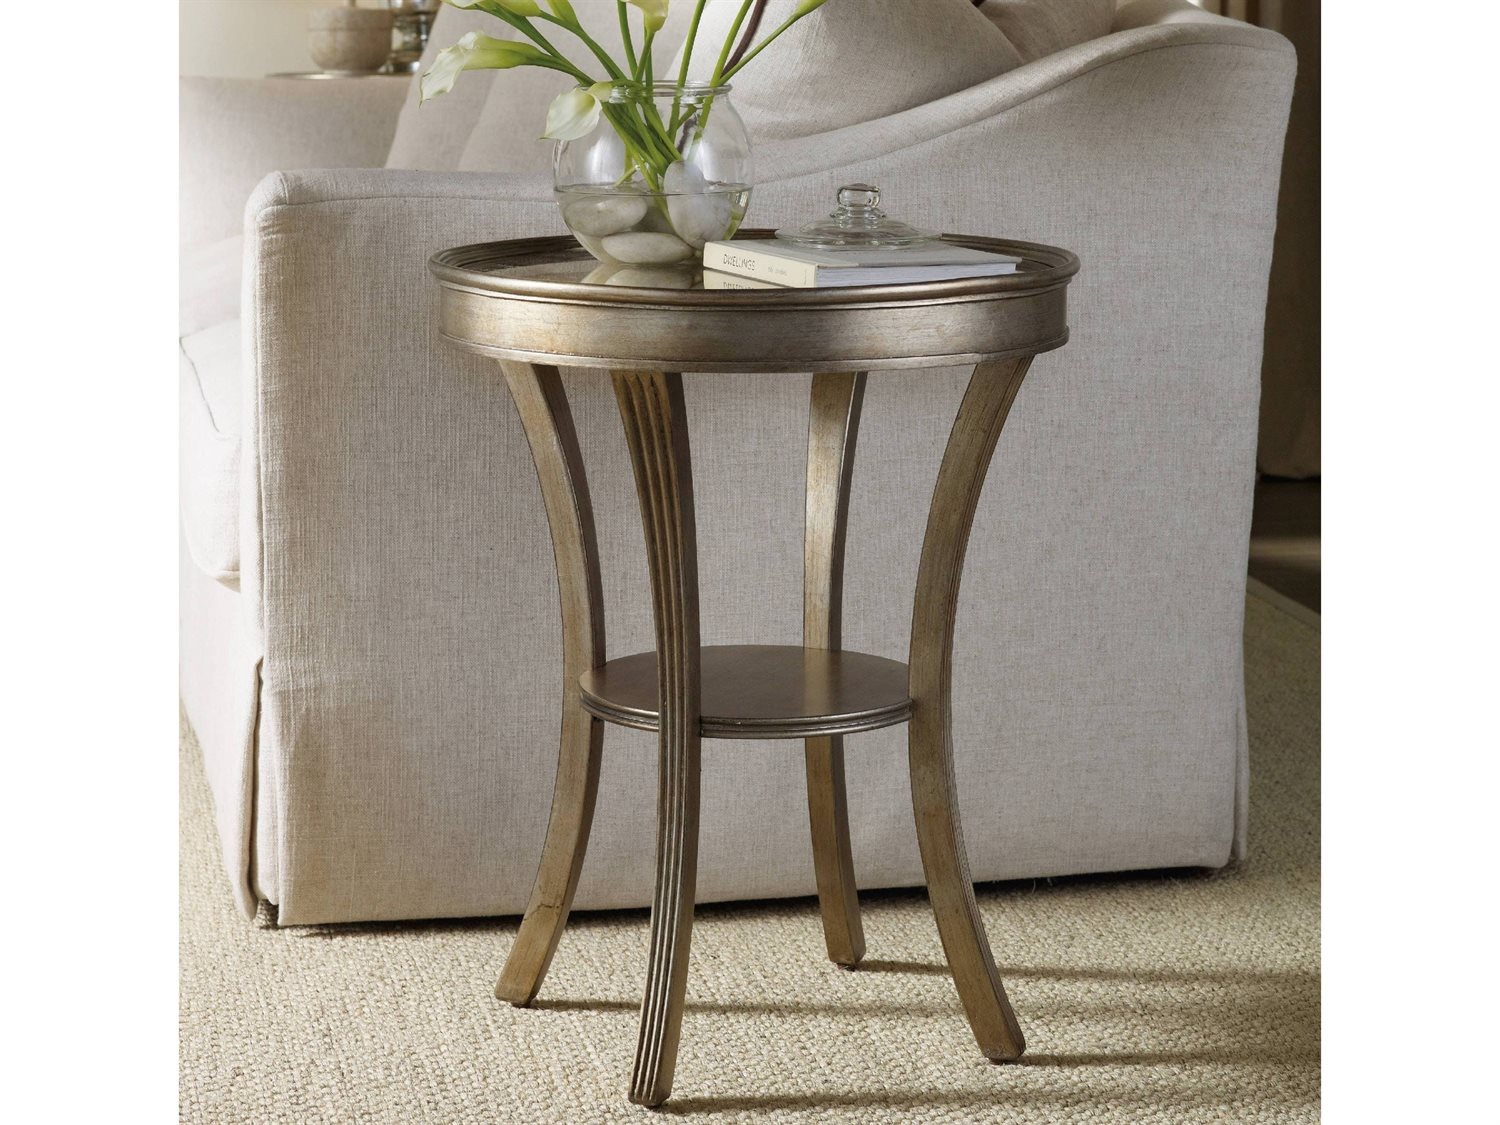 hooker furniture sanctuary wide round accent end table tables touch zoom garden cool nesting diy kitchen plans target black lamp console with drawers little white kids desk worlds